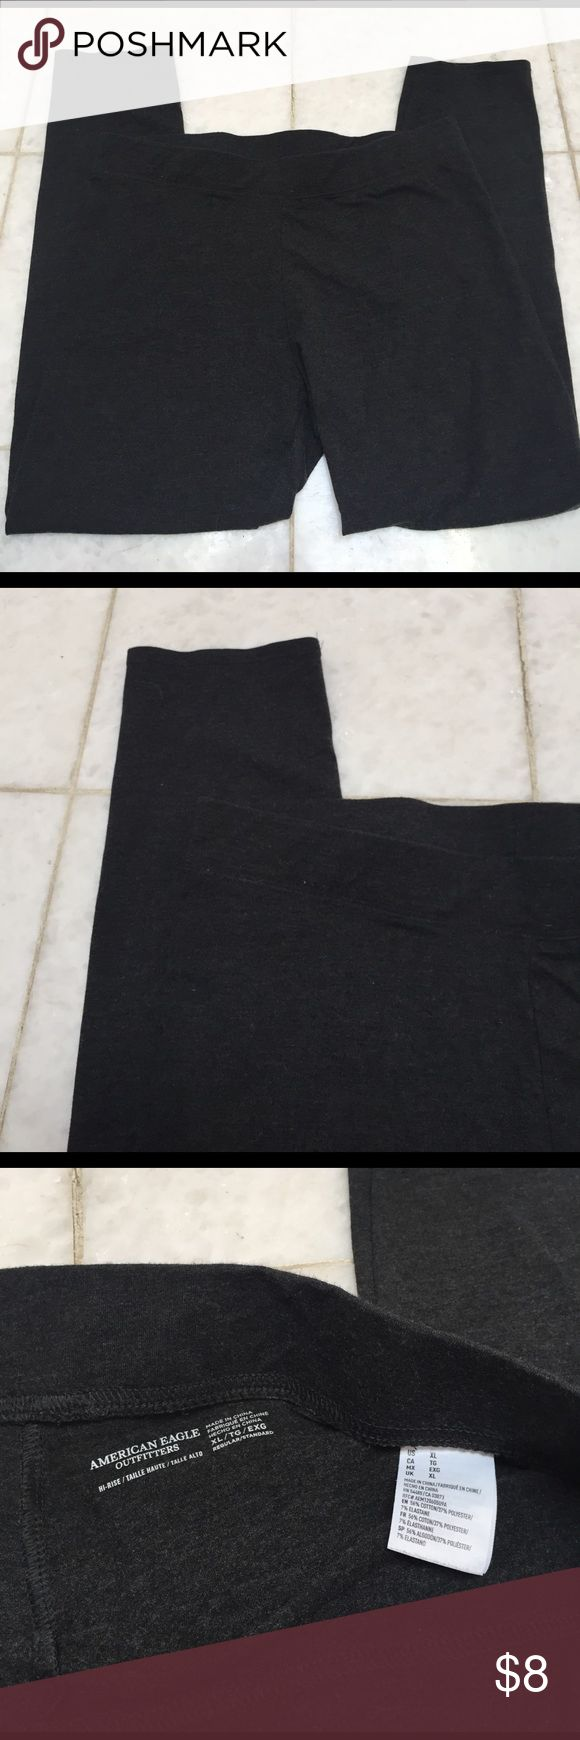 American Eagle Charcoal Gray Leggings Very soft and stretchy pair of charcoal gray leggings from American Eagle! Size XL! Only worn once but they were too short for me. Please feel free to leave any questions or comments down below! Thanks! American Eagle Outfitters Pants Leggings